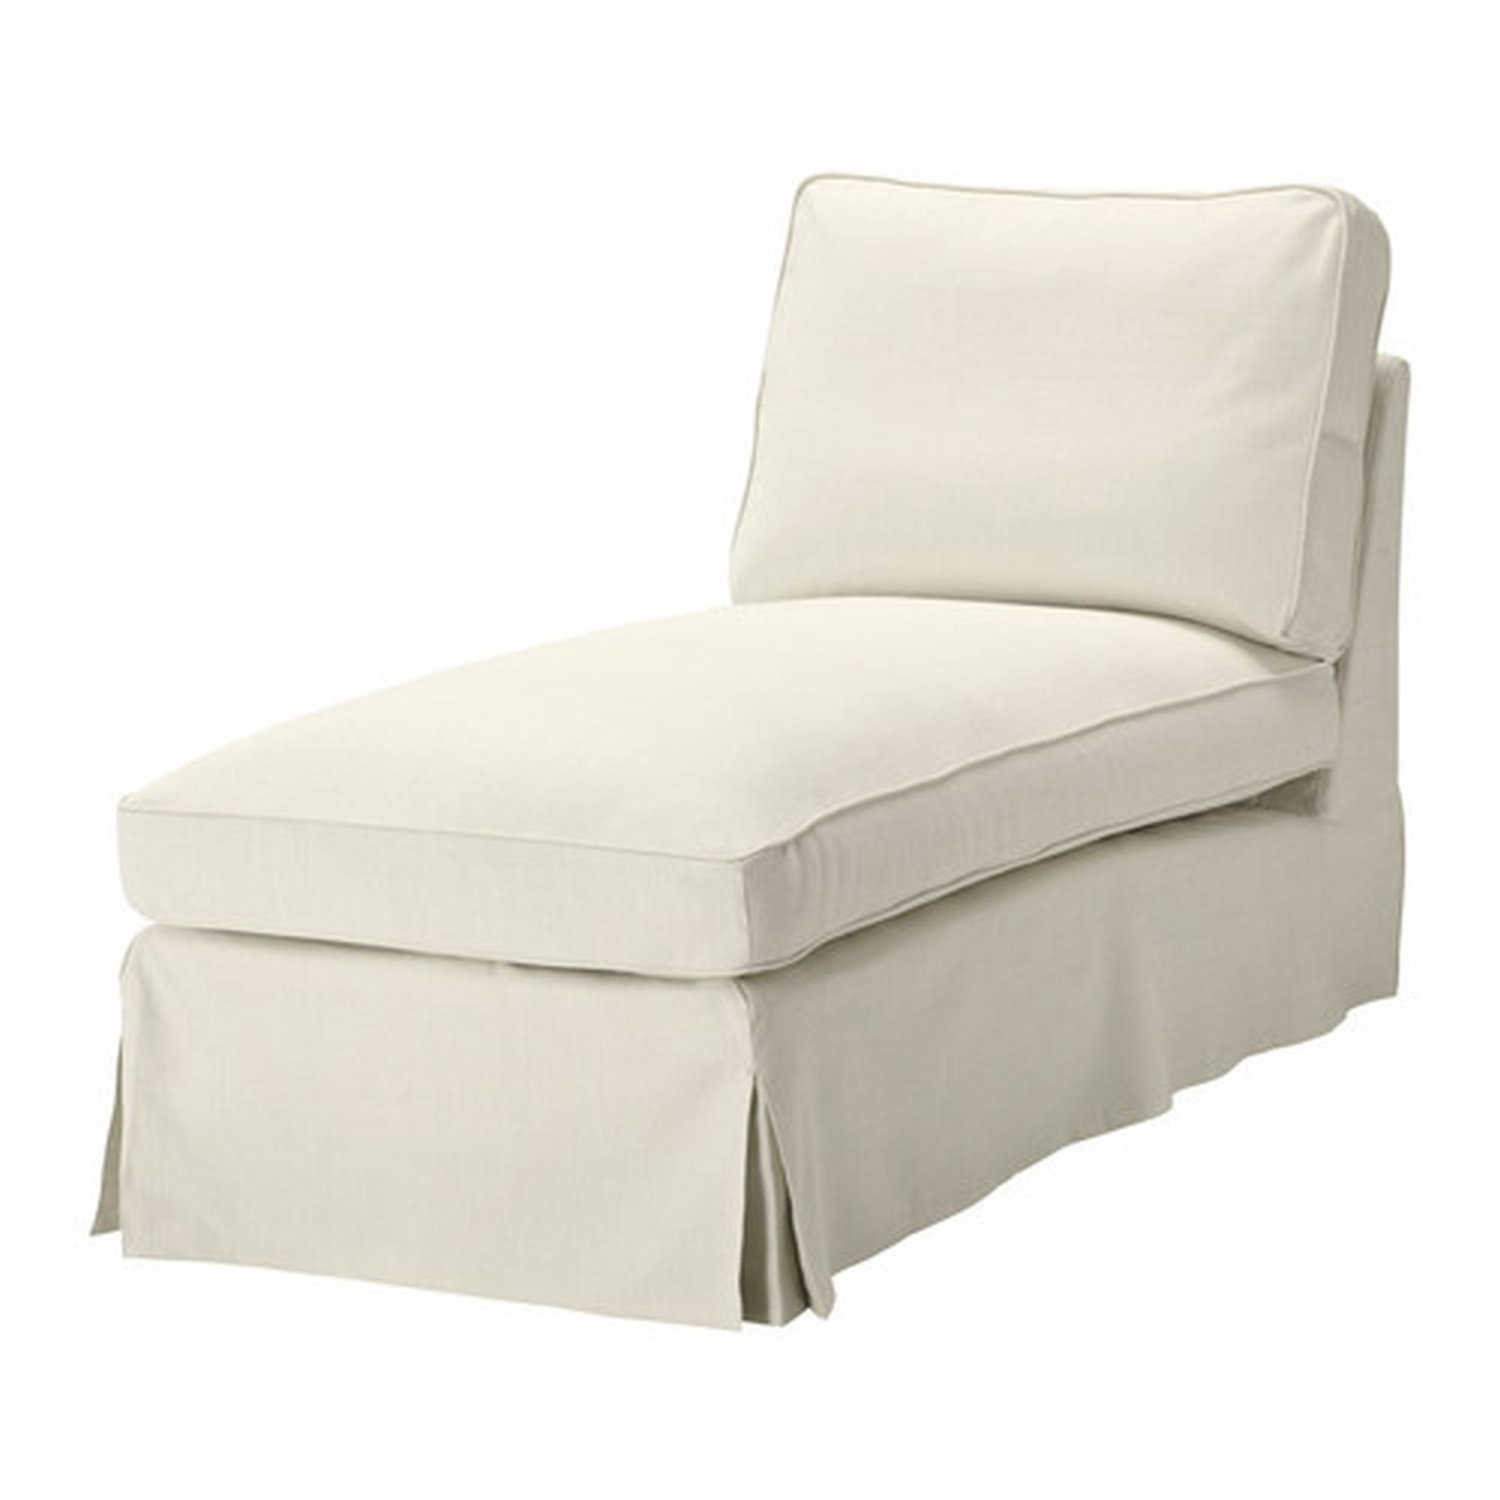 ikea ektorp free standing chaise longue cover slipcover ForChaise Longue Cover